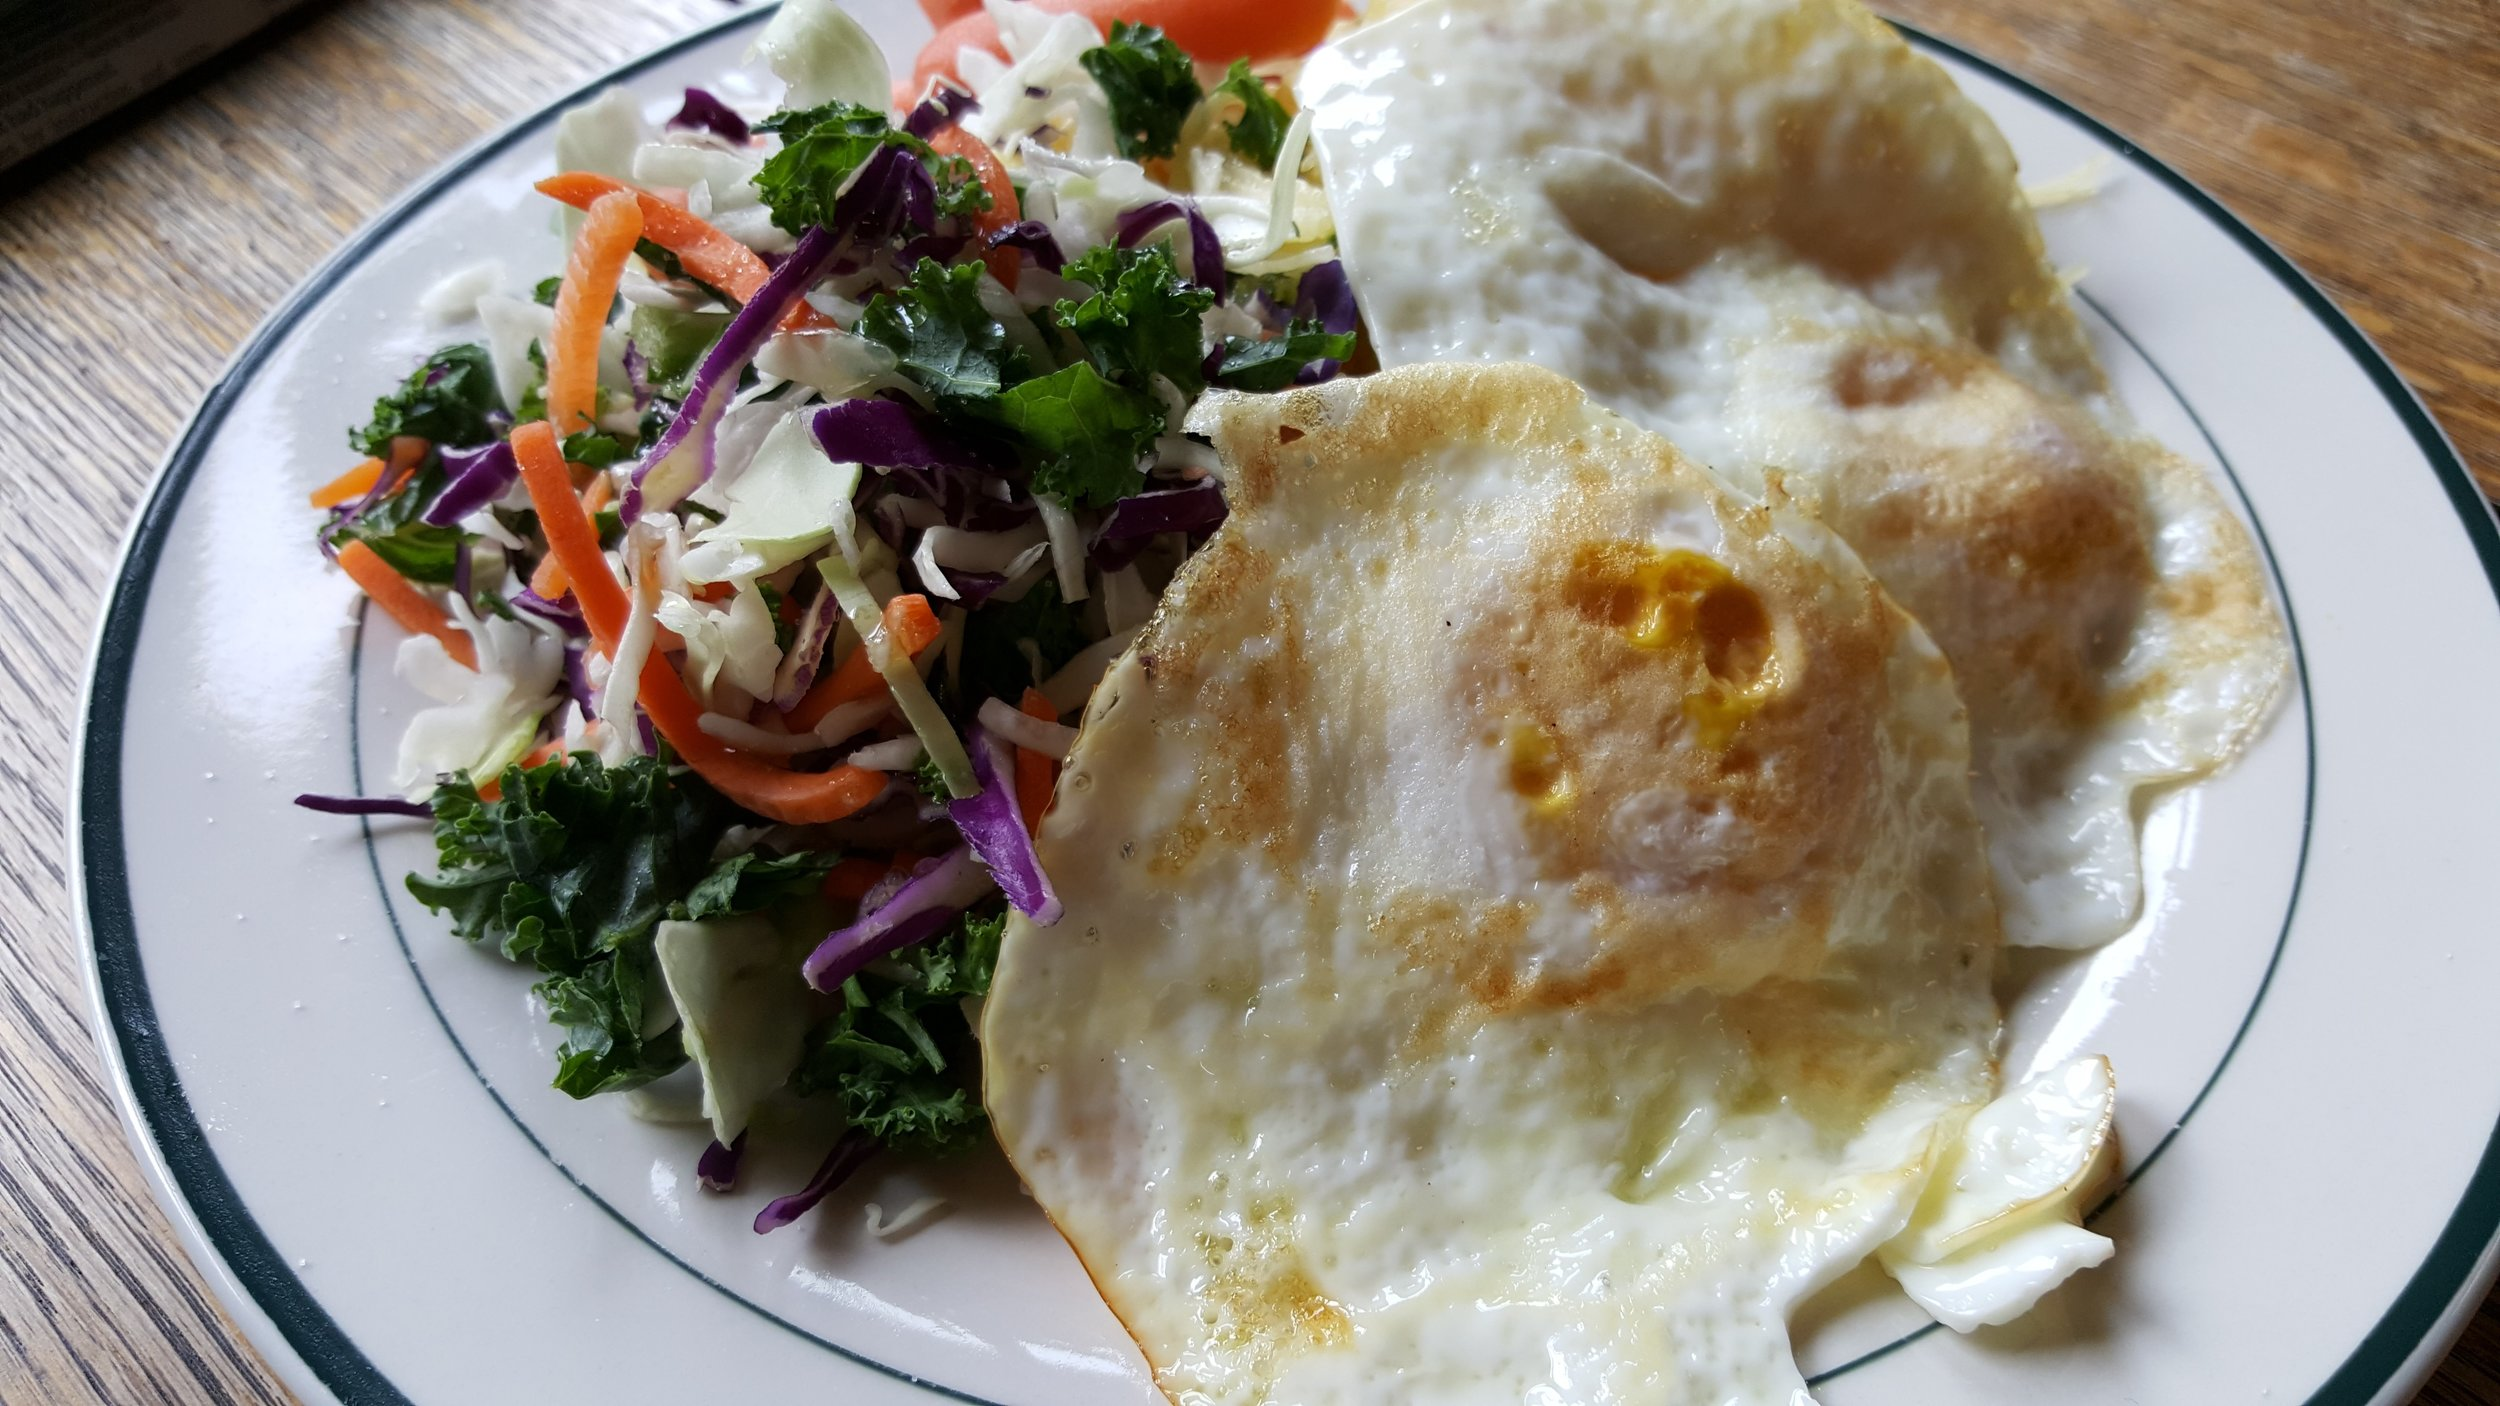 kale and egg salad